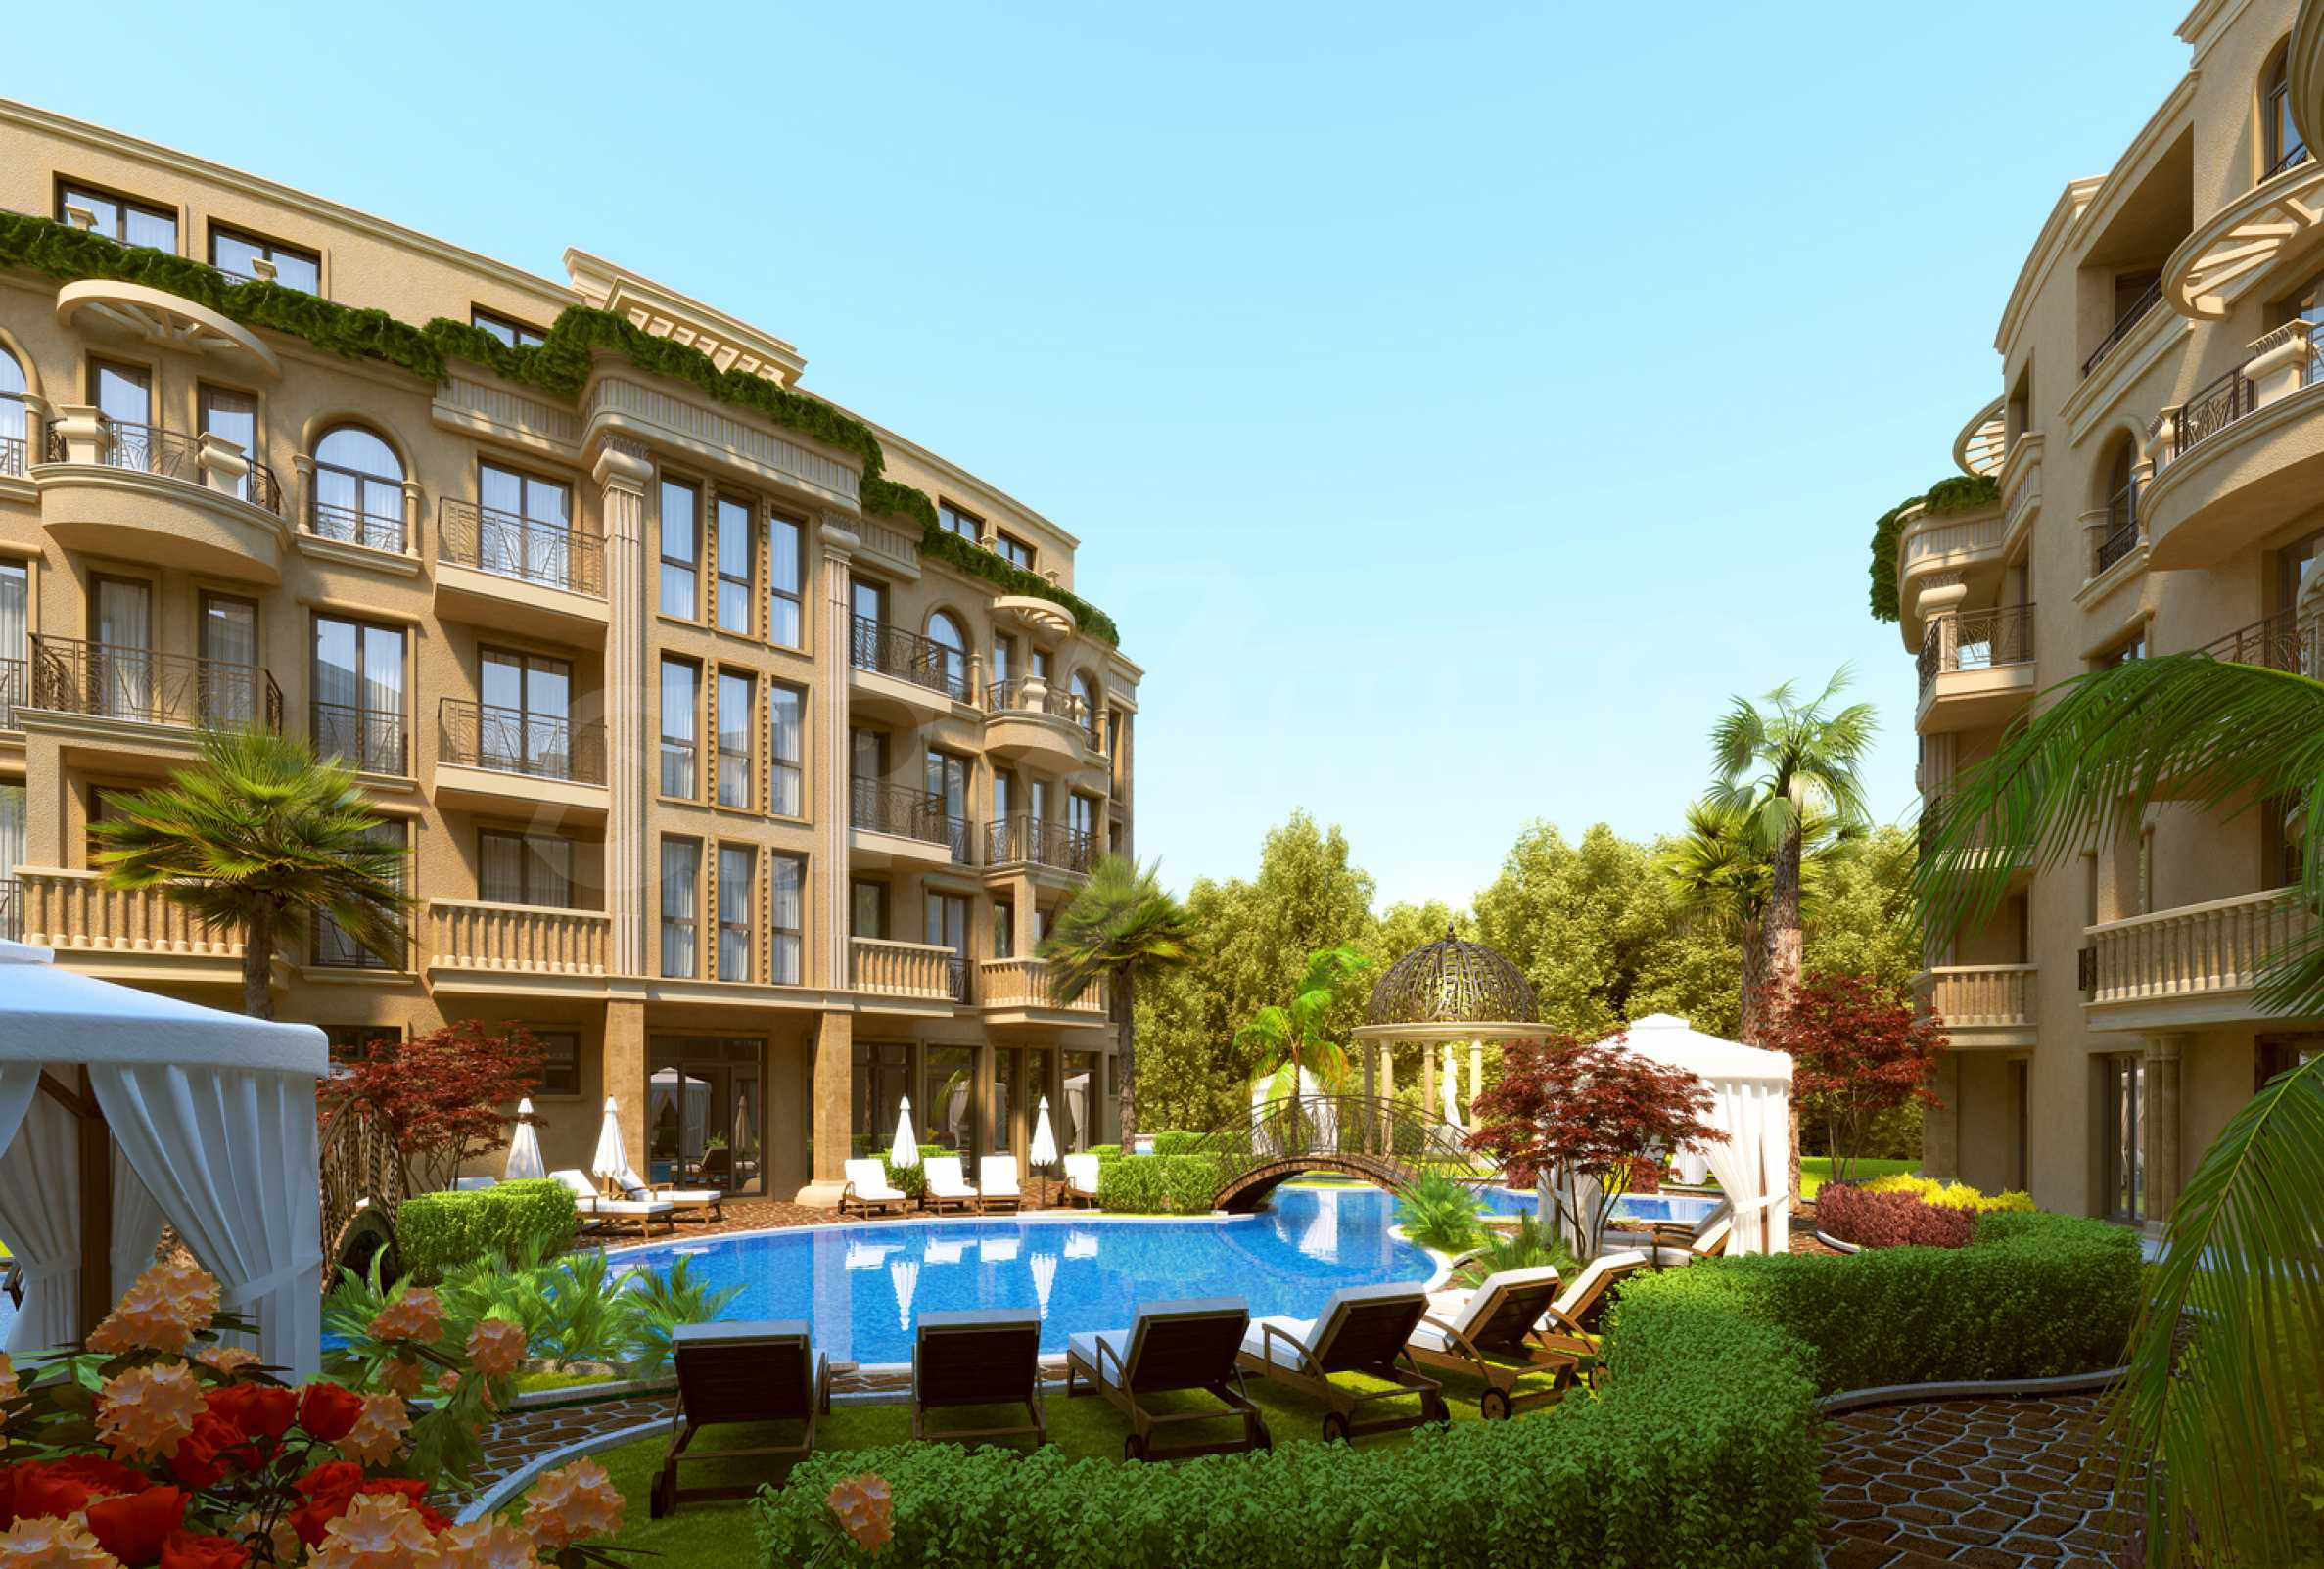 2 Bedroom Apartment For Sale Sunny Beach Property Prices Suprimmo Net